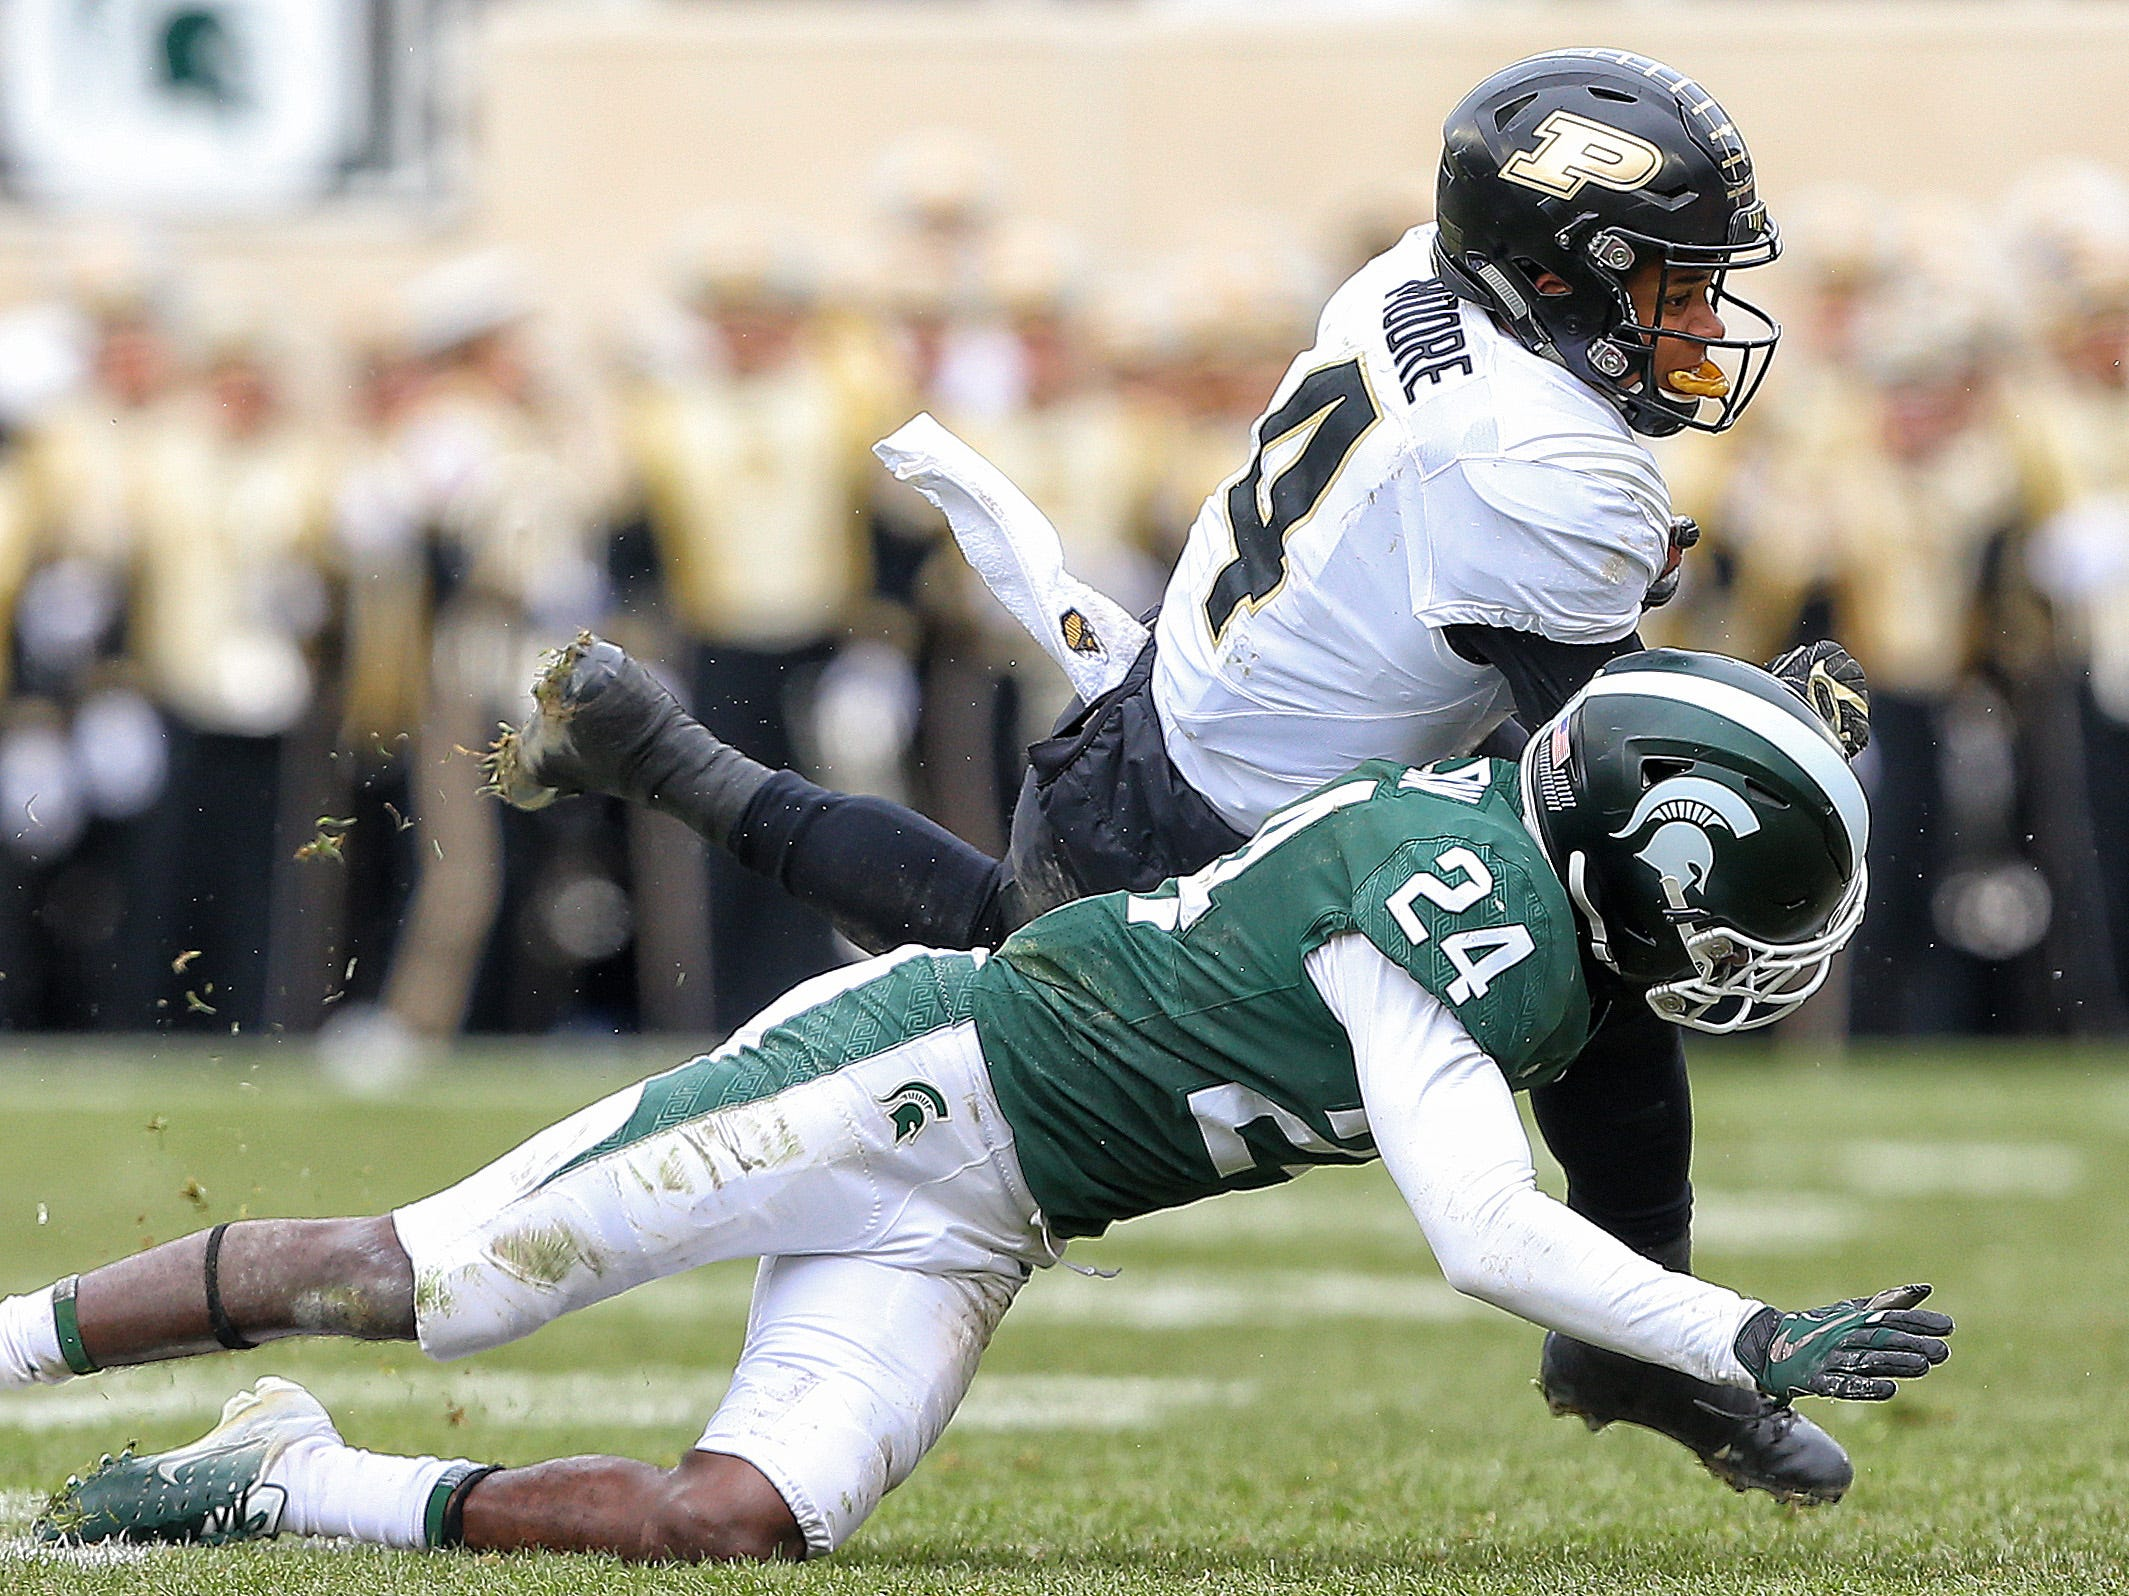 Oct 27, 2018; East Lansing, MI, USA; Purdue Boilermakers wide receiver Rondale Moore (4) runs against Michigan State Spartans safety Tre Person (24) during the second half at Spartan Stadium. Mandatory Credit: Mike Carter-USA TODAY Sports